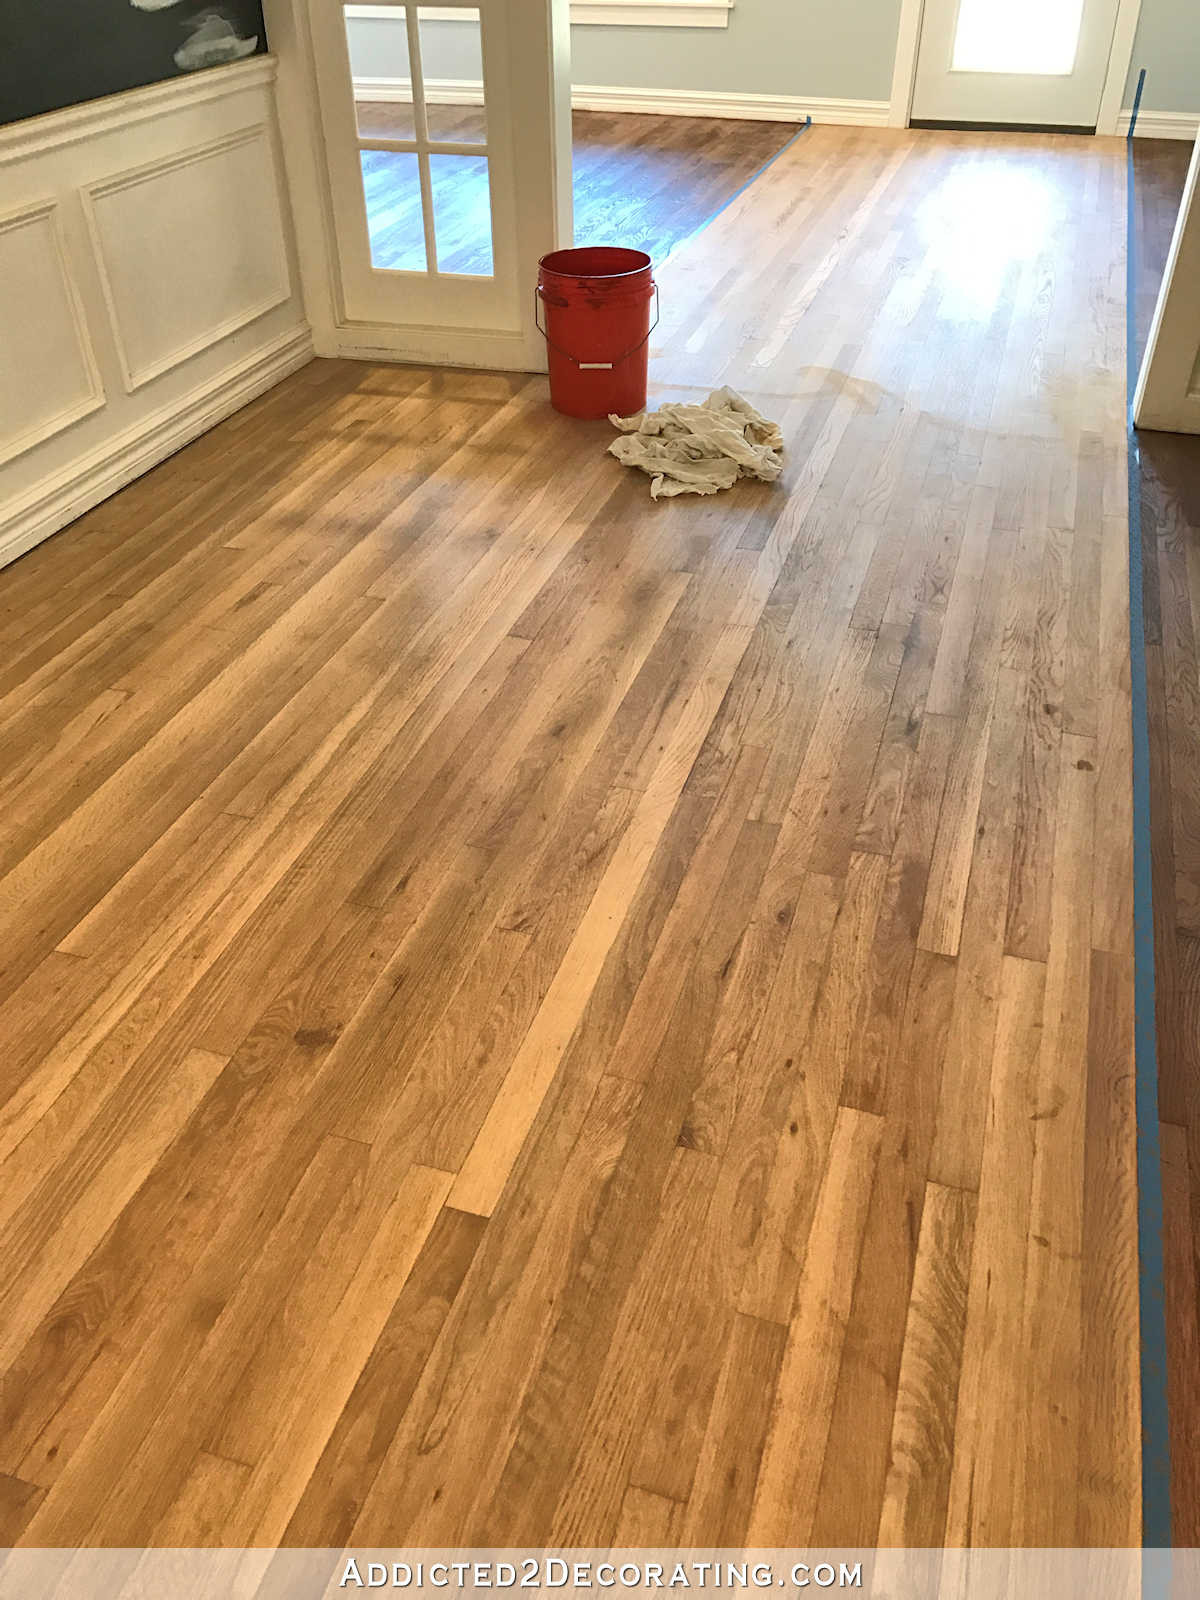 best hardwood floor stain color of adventures in staining my red oak hardwood floors products process within staining red oak hardwood floors 8 entryway and music room wood conditioner